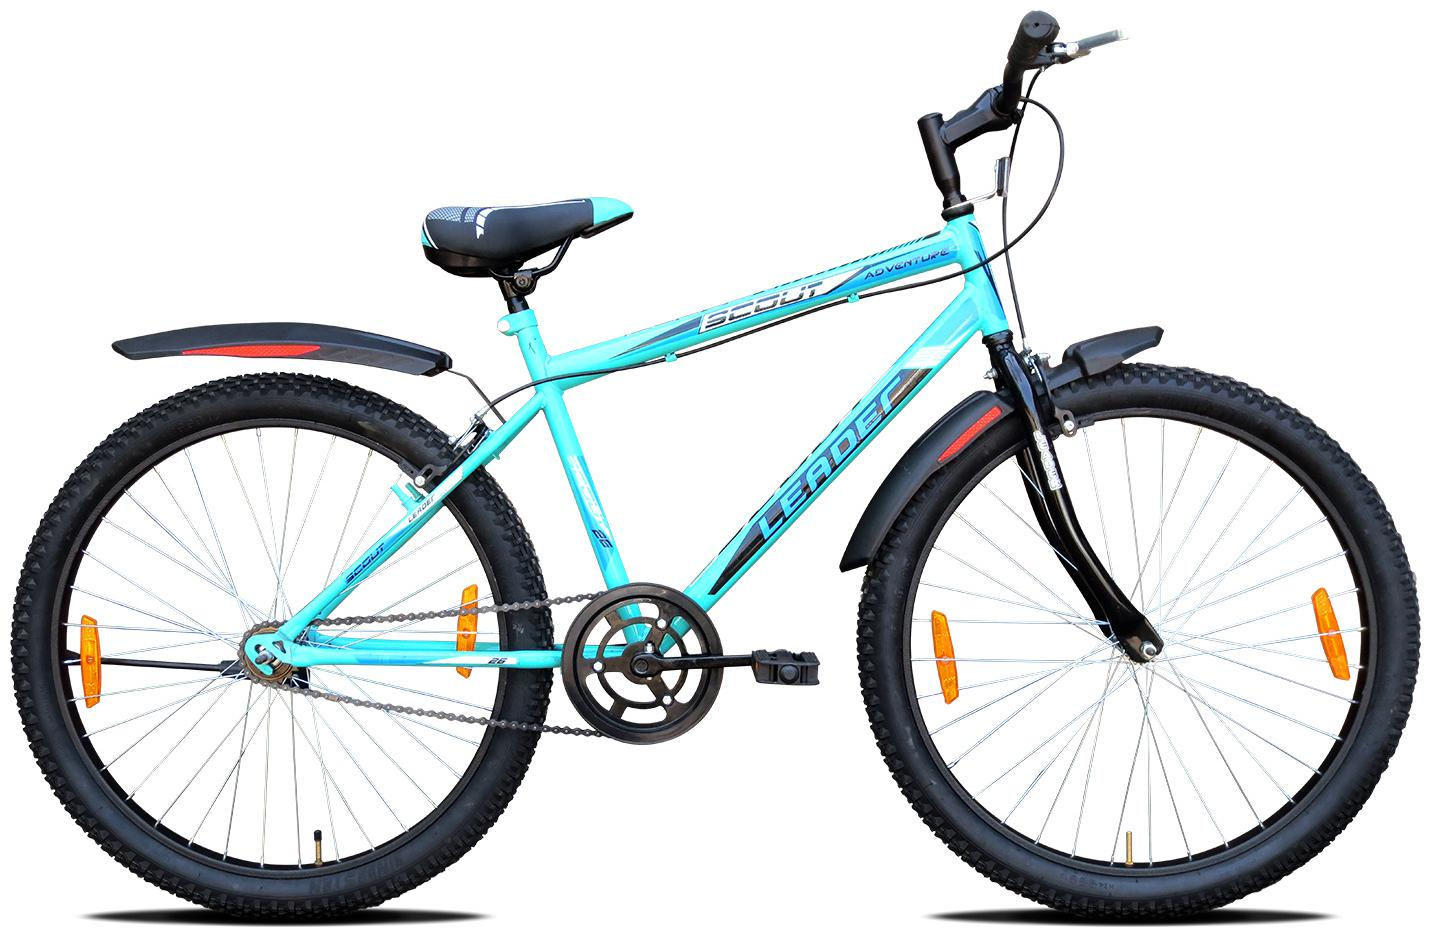 Leader Scout MTB 26T Men's Mountain Bicycle/Bike Without Gear Single Speed   Sea Green,Ideal for 10 + Years 18 inch Frame by LEADER CYCLES